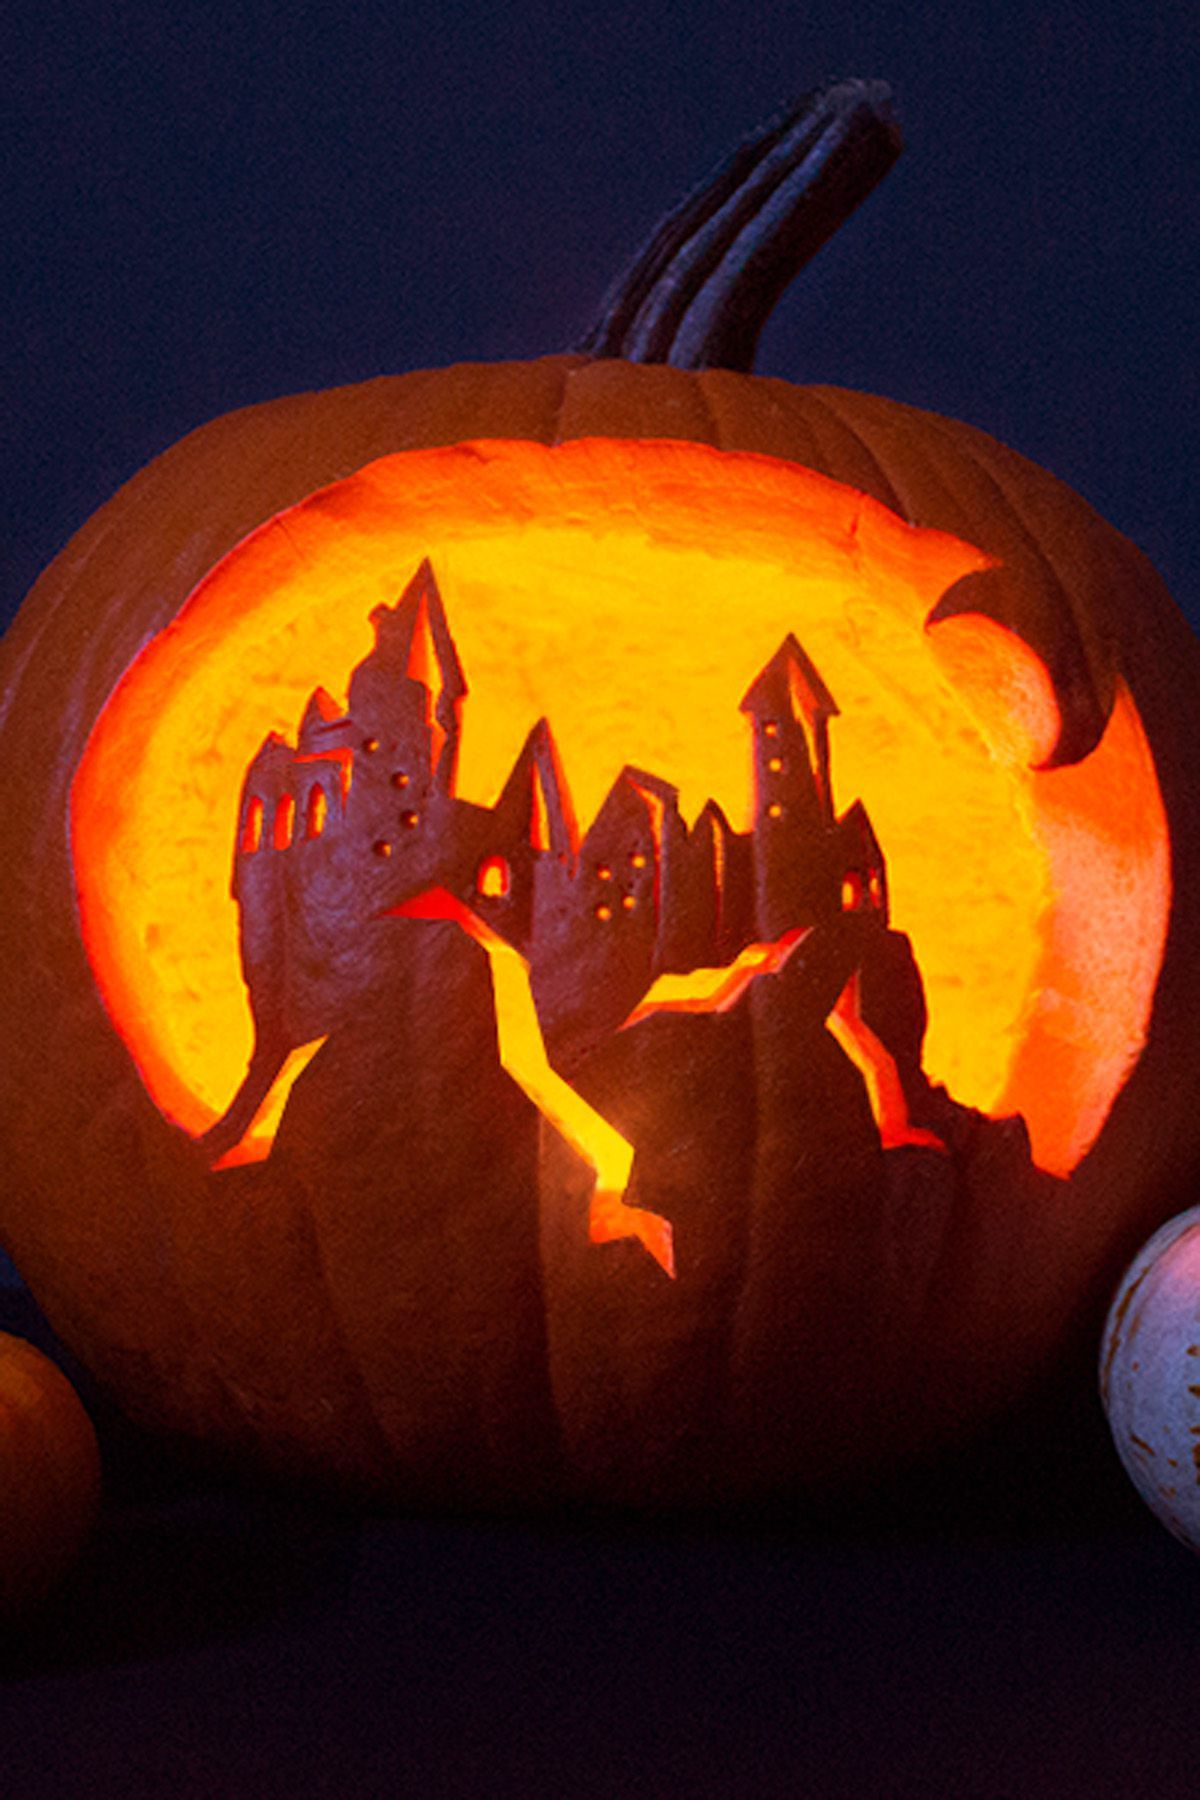 16 Fang Tastic Stencils To Transform Your Porch Pumpkins Pumpkin Carving Pumkin Carving Harry Potter Pumpkin Carving